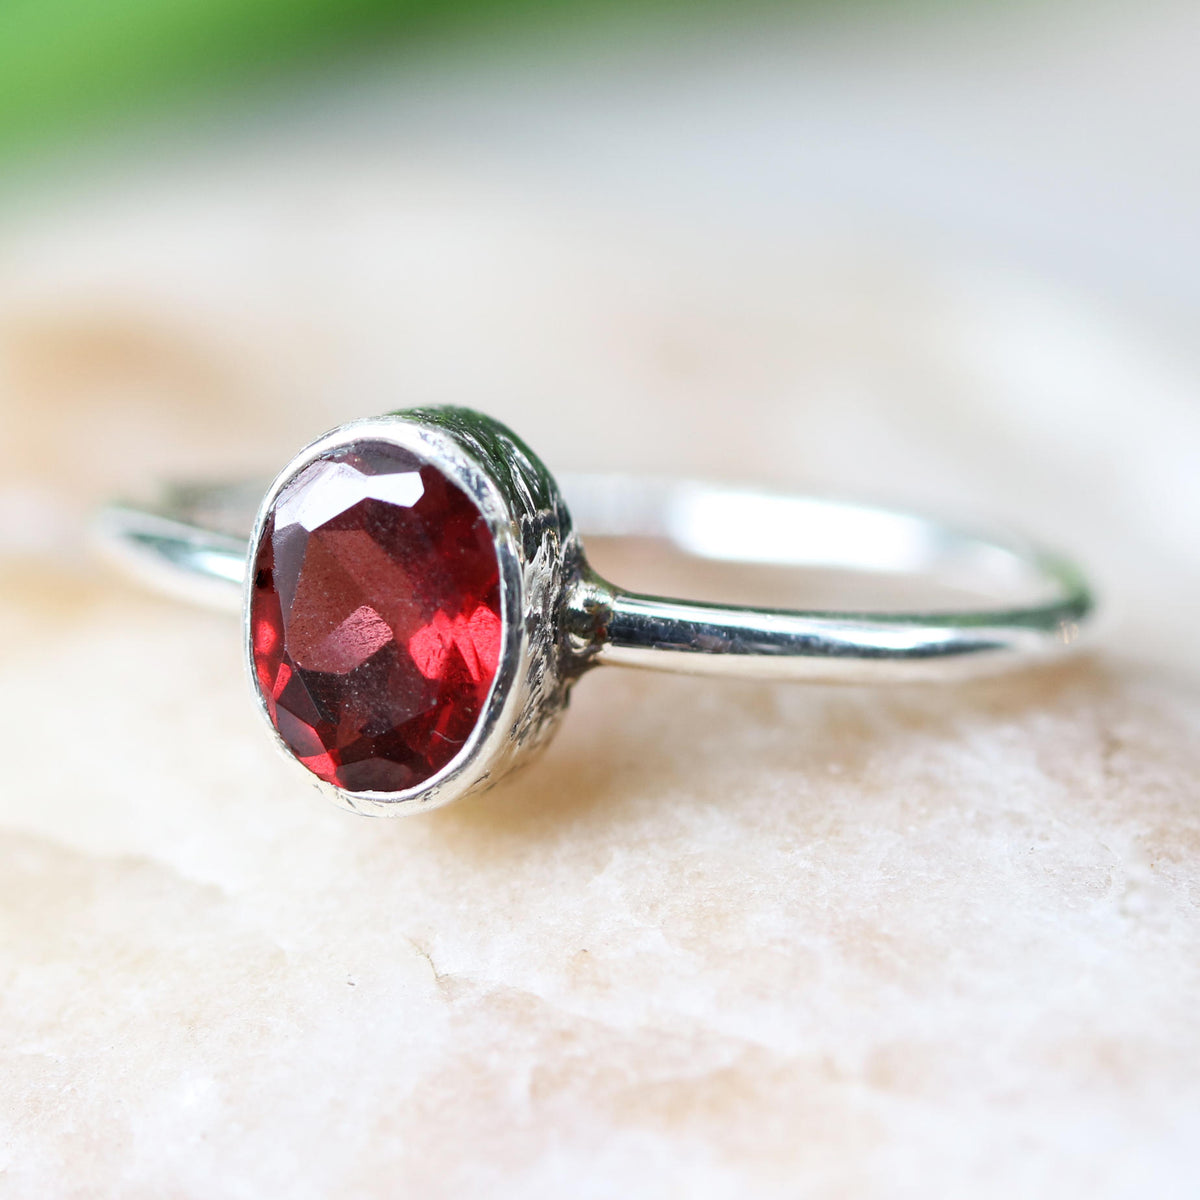 Oval faceted garnet ring in silver bezel setting with sterling silver high polish finished band